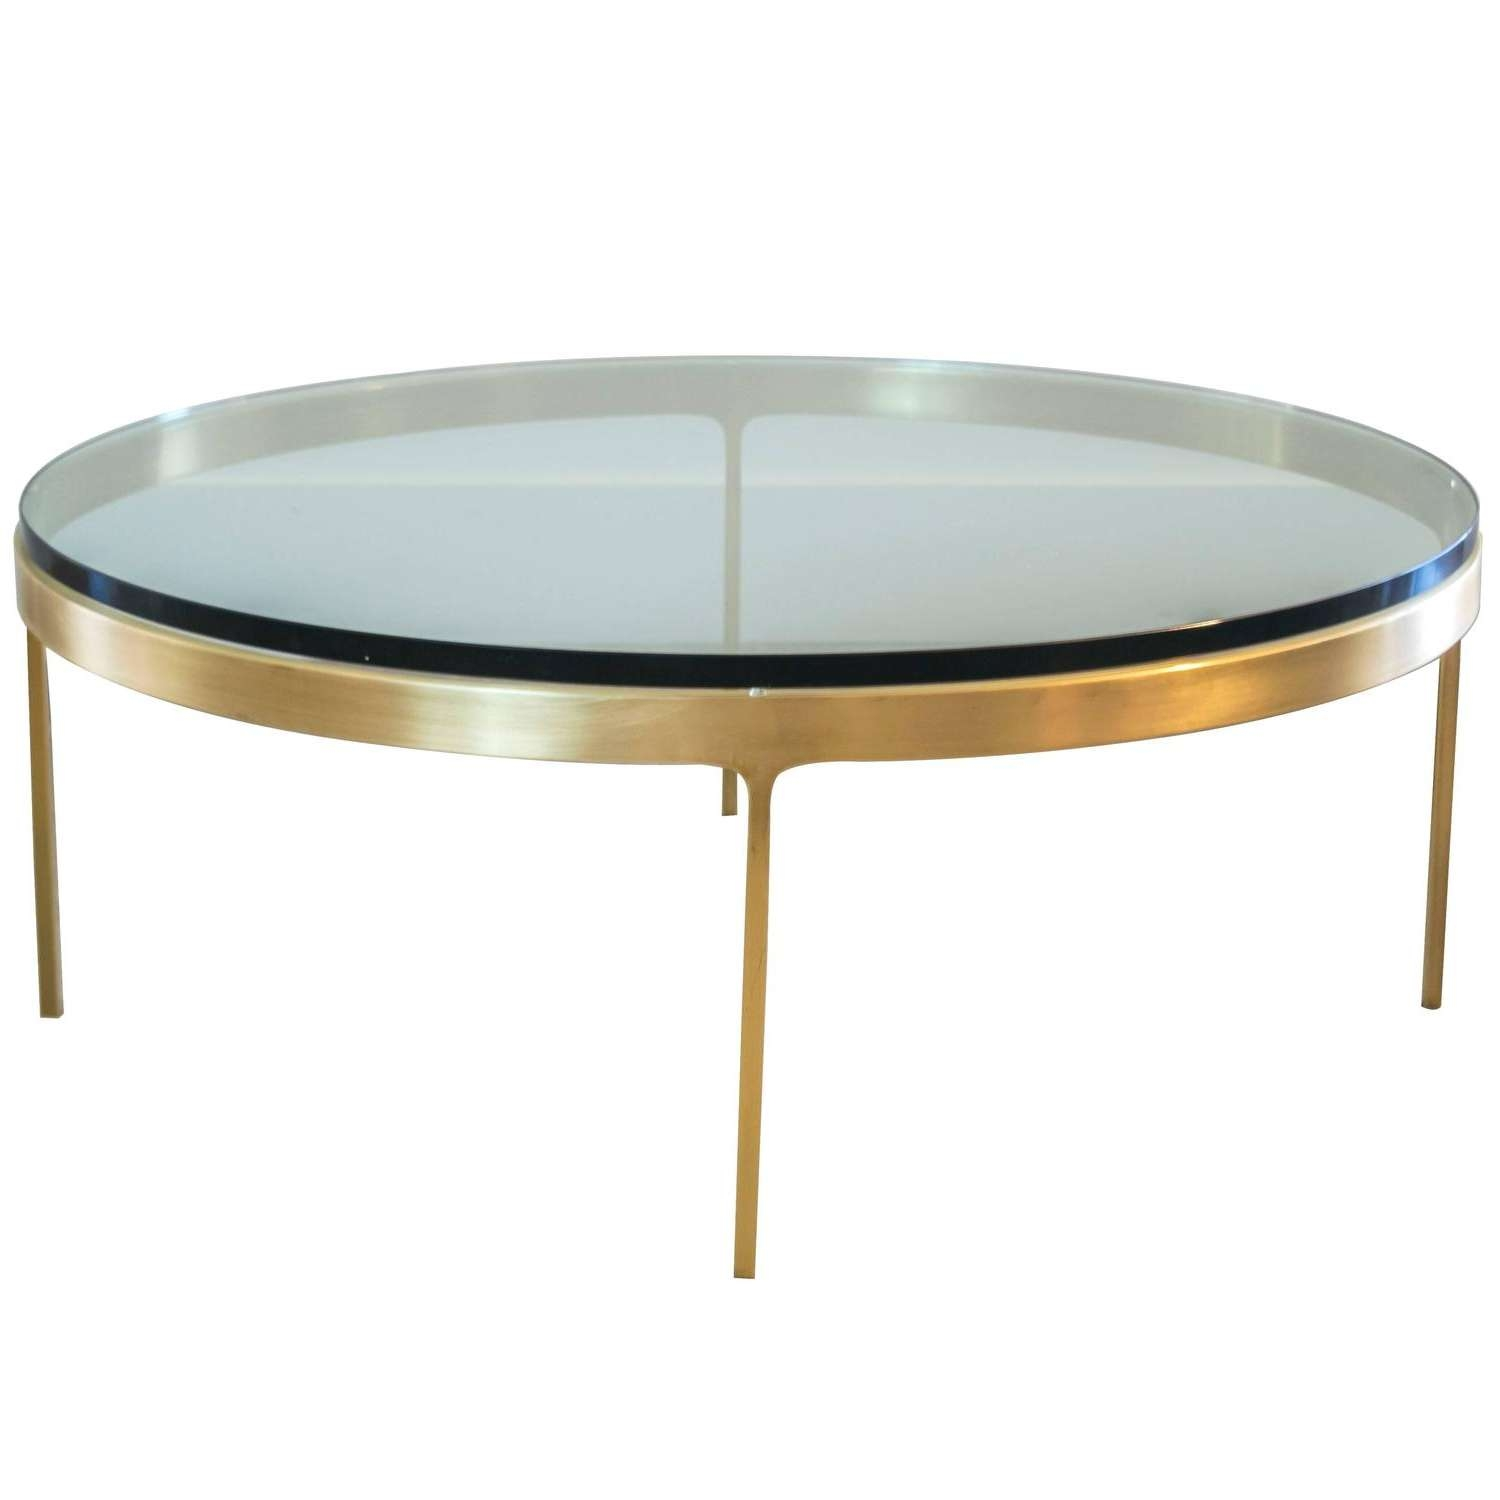 Round Coffee Table With Drawers 20 Best Collection Of Large Round Low Coffee Tables